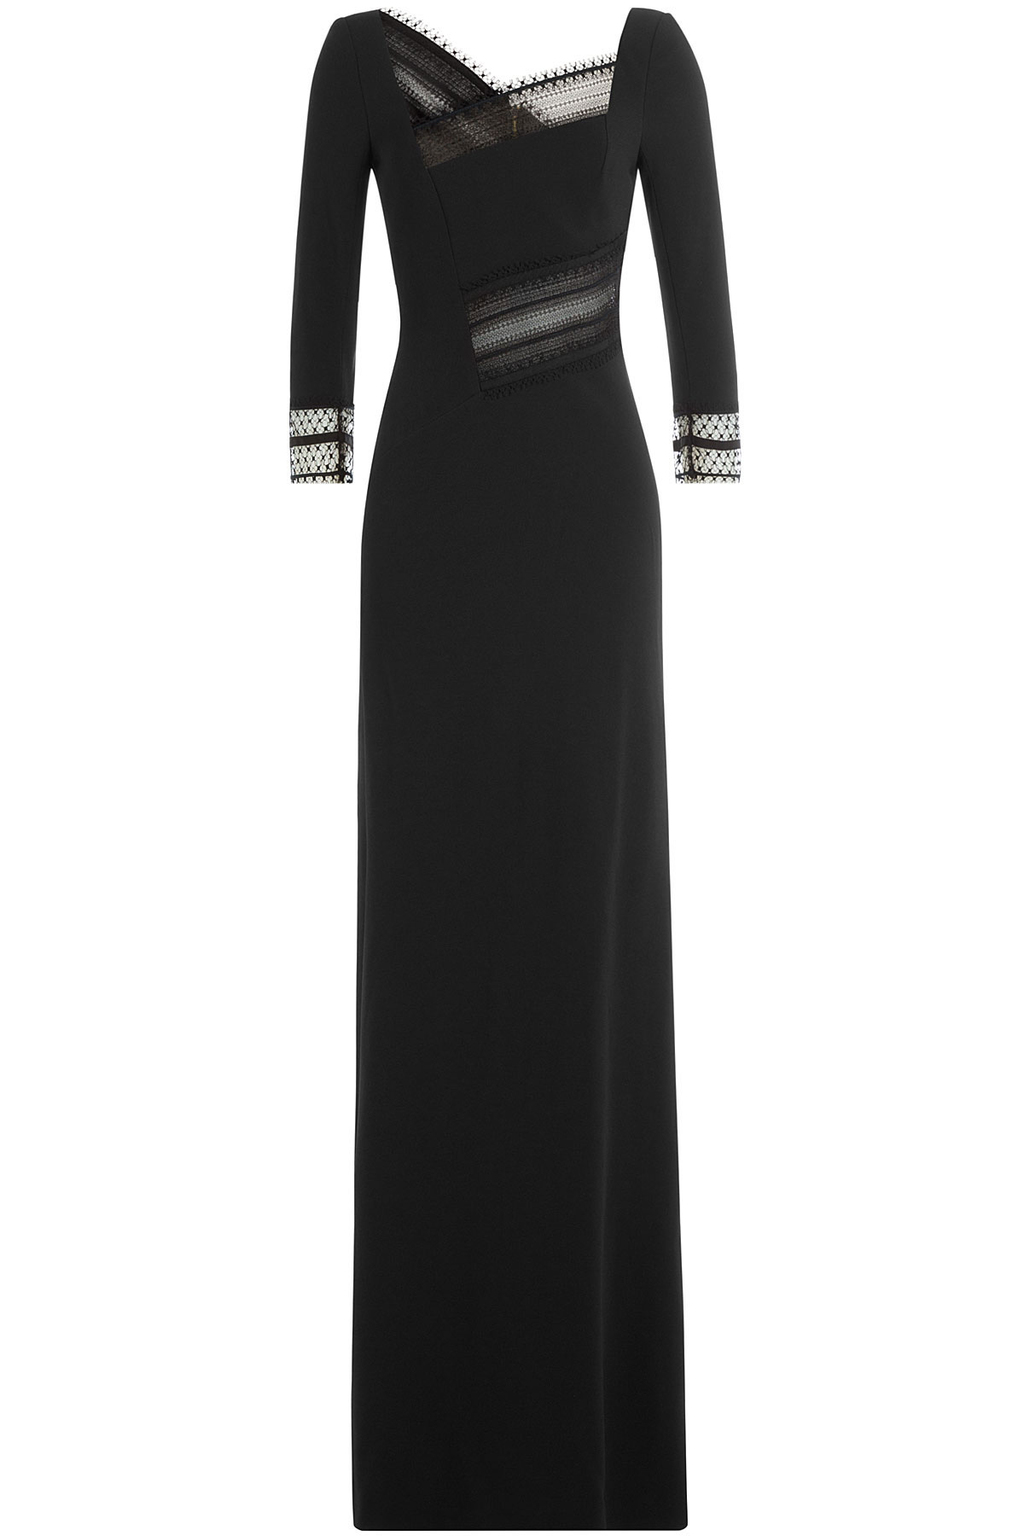 Asymmetric Dress With Lace - pattern: plain; style: maxi dress; neckline: asymmetric; predominant colour: black; occasions: evening; length: floor length; fit: body skimming; fibres: viscose/rayon - stretch; sleeve length: 3/4 length; sleeve style: standard; pattern type: fabric; texture group: other - light to midweight; embellishment: lace; season: a/w 2016; wardrobe: event; embellishment location: bust, sleeve/cuff, waist